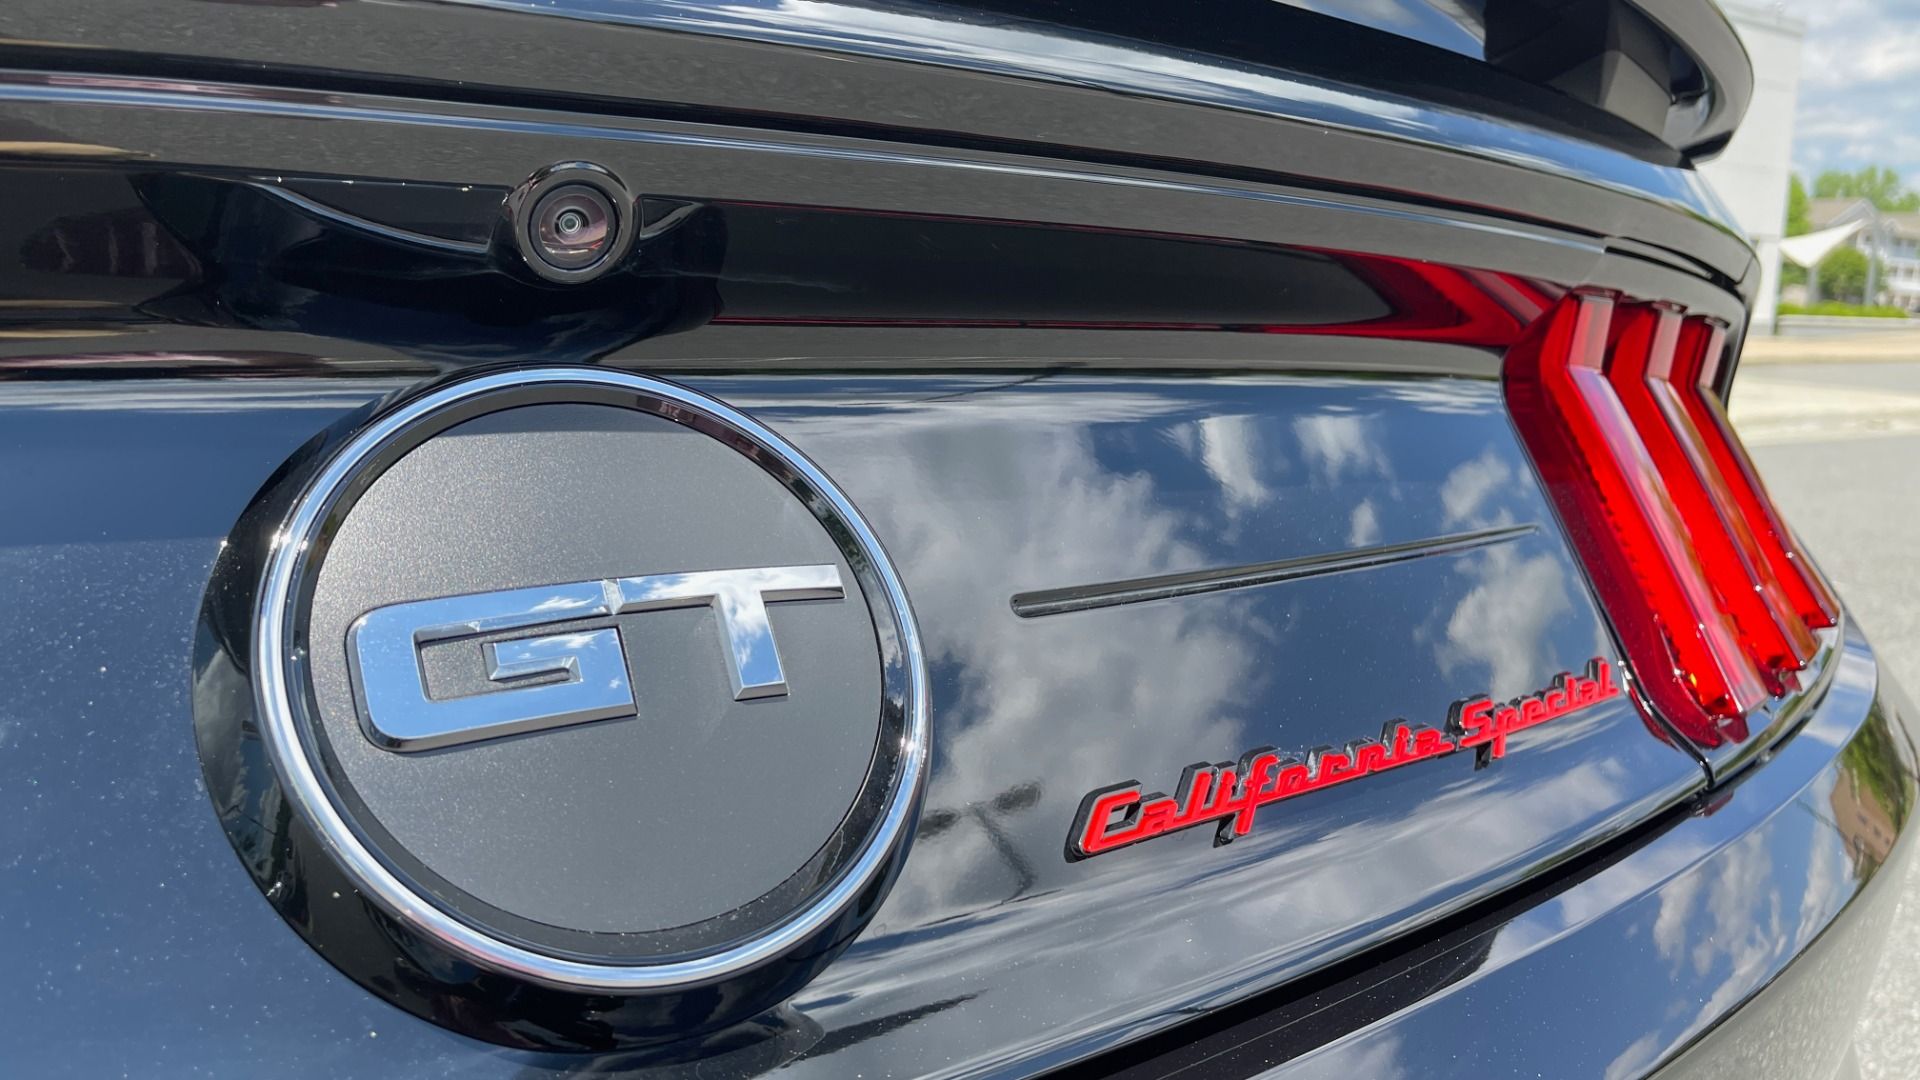 Used 2020 Ford MUSTANG GT PREMIUM / CALIFORNIA SPECIAL / 5.0L V8 / 6-SPD MAN for sale Sold at Formula Imports in Charlotte NC 28227 30